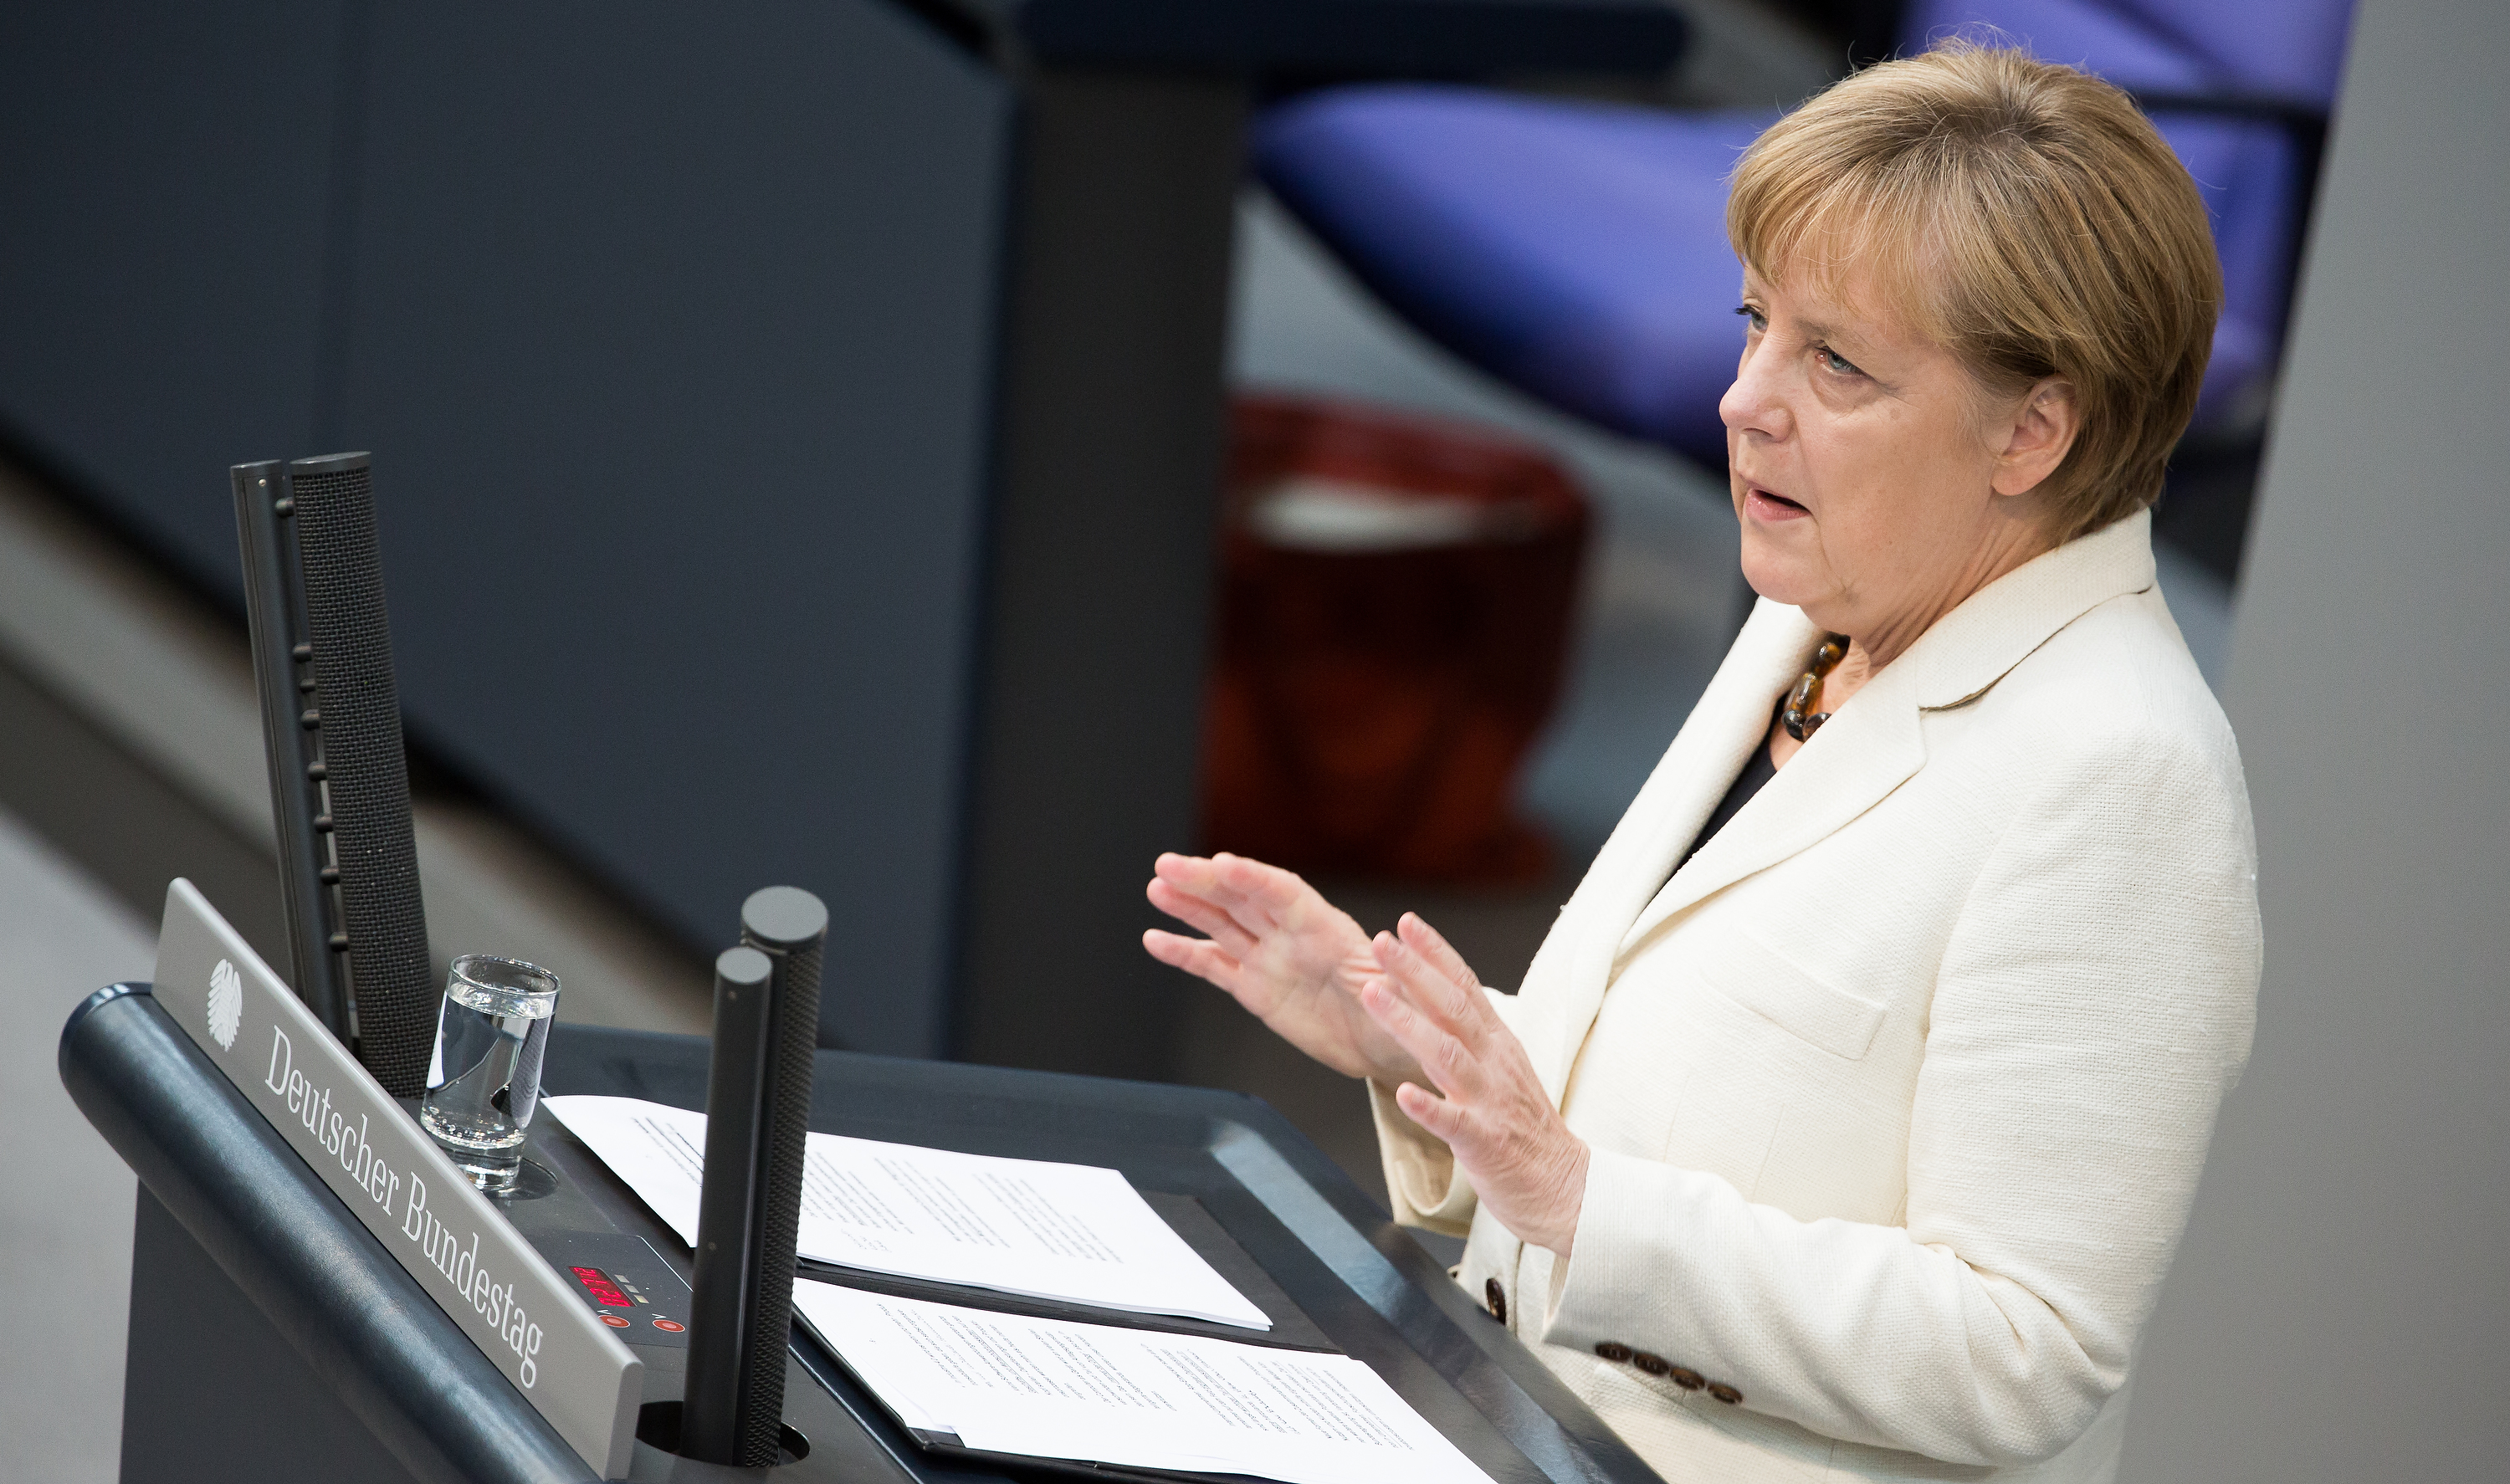 CDU party congress shifts to the right on immigration, burqa, and dual citizenship